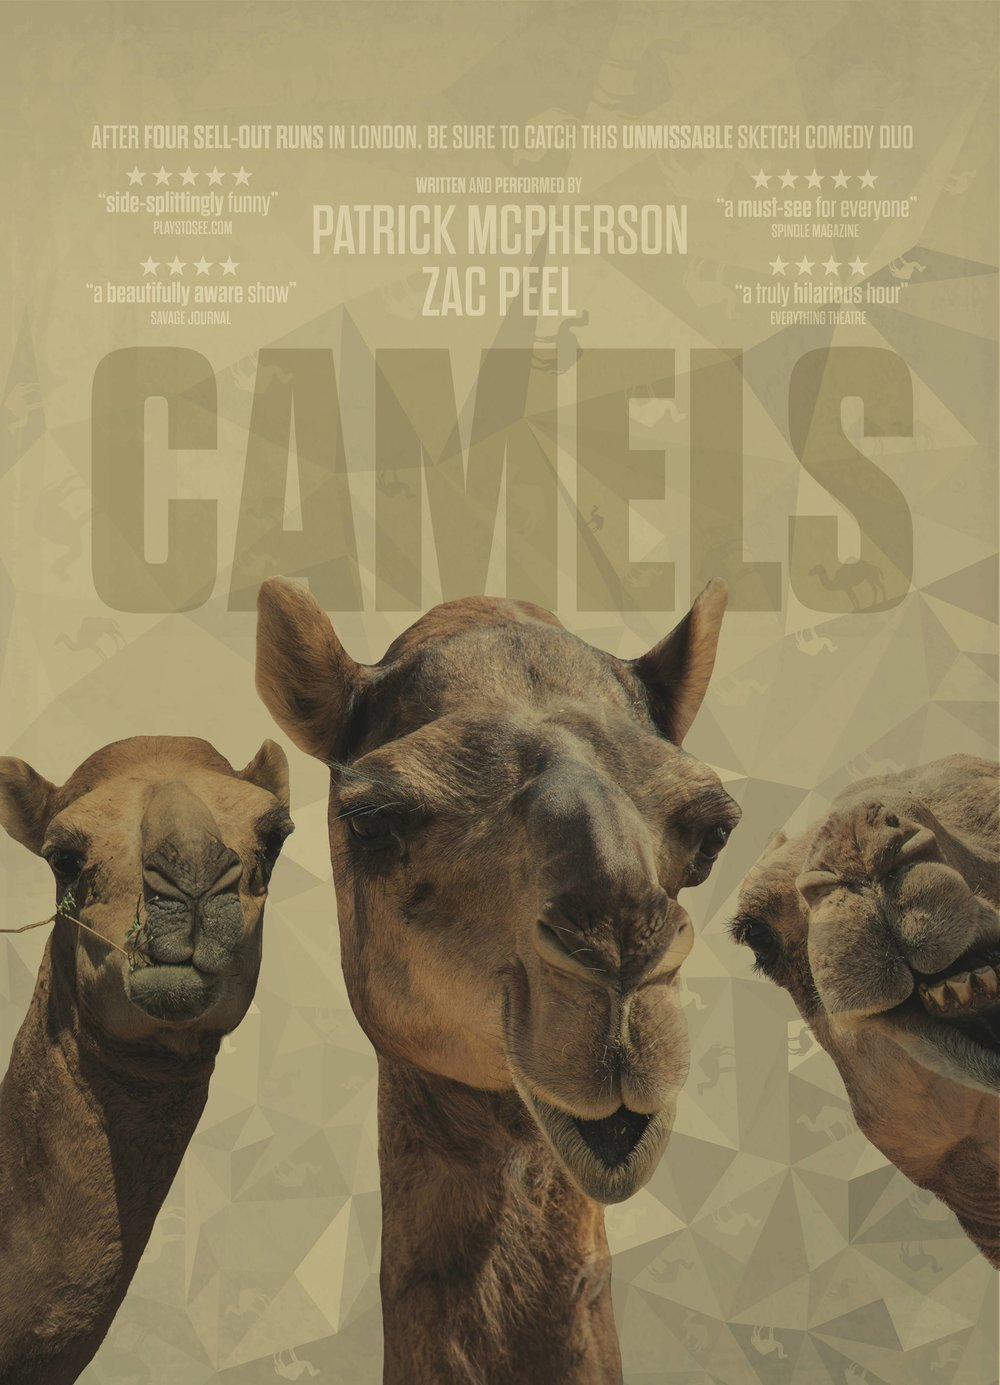 Camels in Edinburgh - We took our hit show, Camels, up to Edinburgh for a month.Edinburgh in Numbers:30 Performances3 LATE NIGHT Shows at the Bedlam TheatreOver 3000 Tickets Sold20,000 Flyers Printed + 100 PostersOpened The List Festival Party to an audience of 260Underbelly's 2nd best selling sketch show after Foil, Arms and Hog